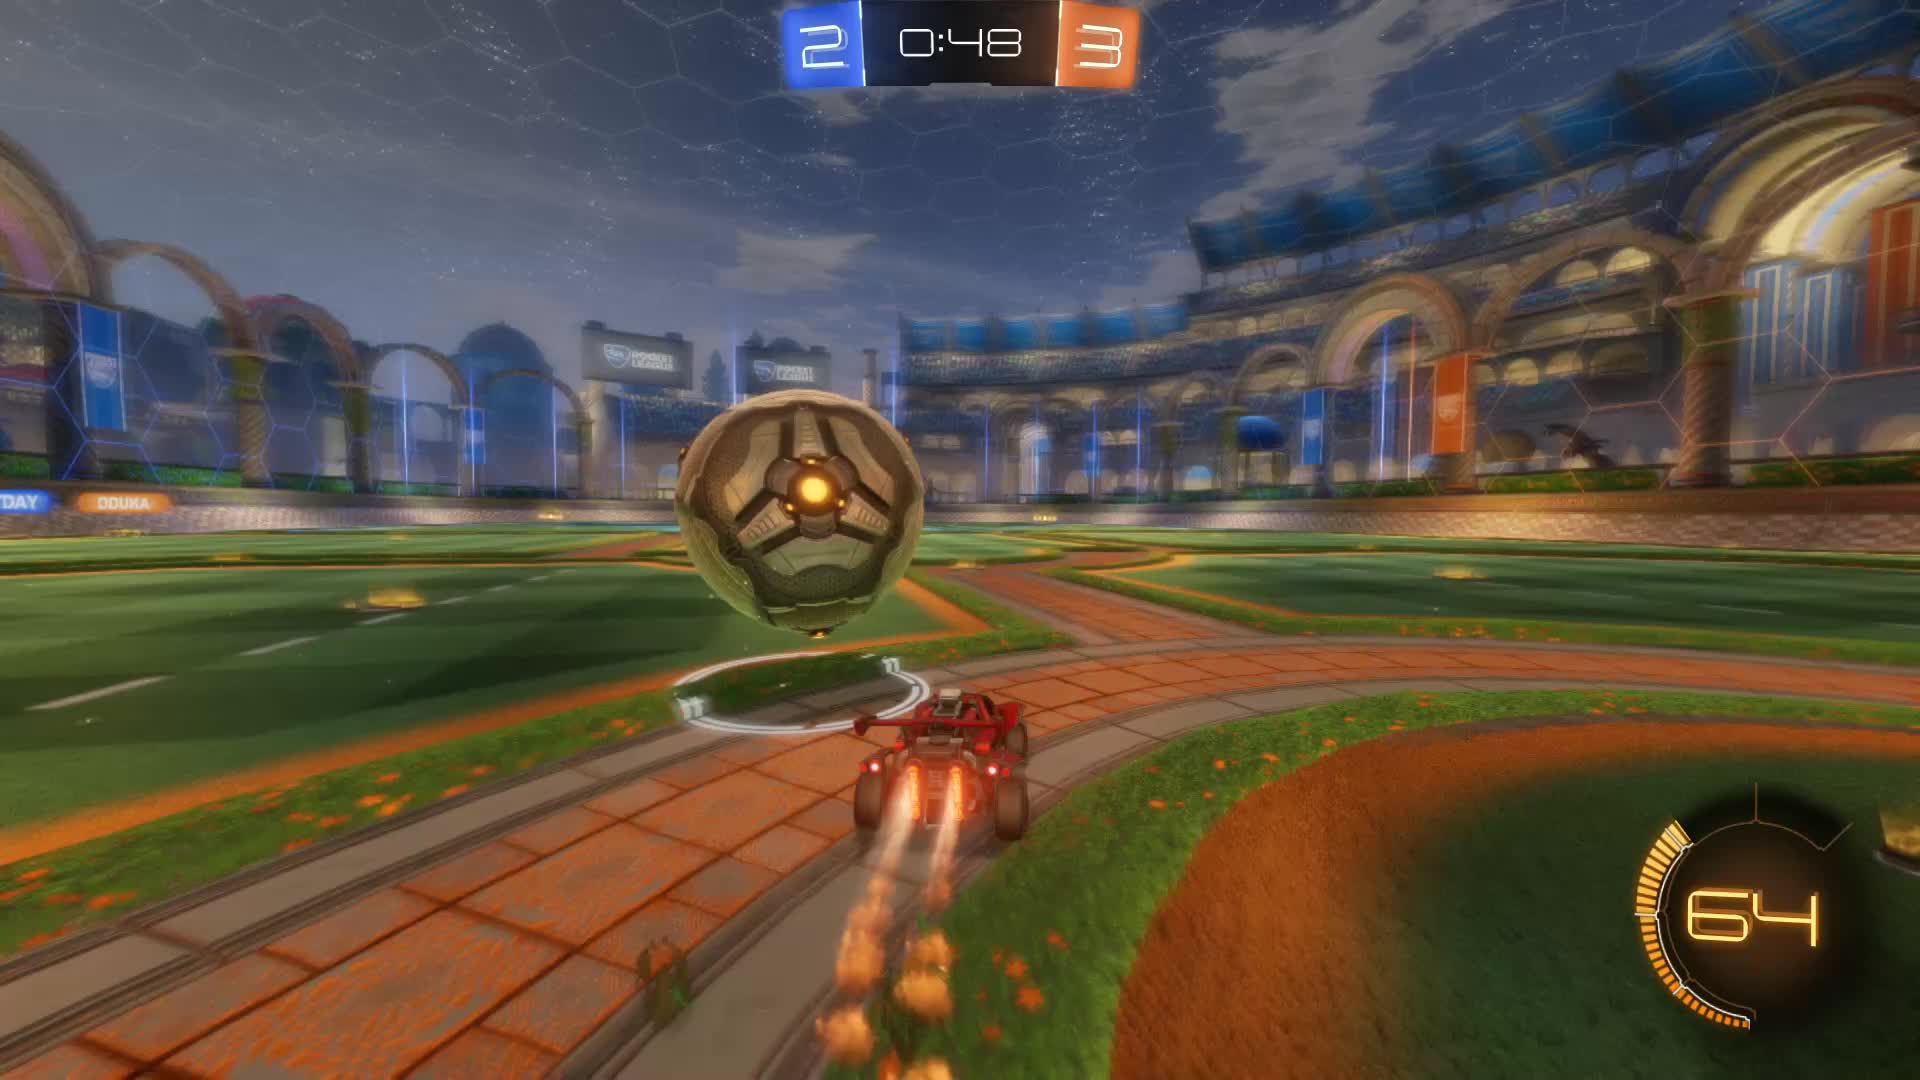 Assist, Gif Your Game, GifYourGame, JAG, Rocket League, RocketLeague, Assist 3: JAG GIFs